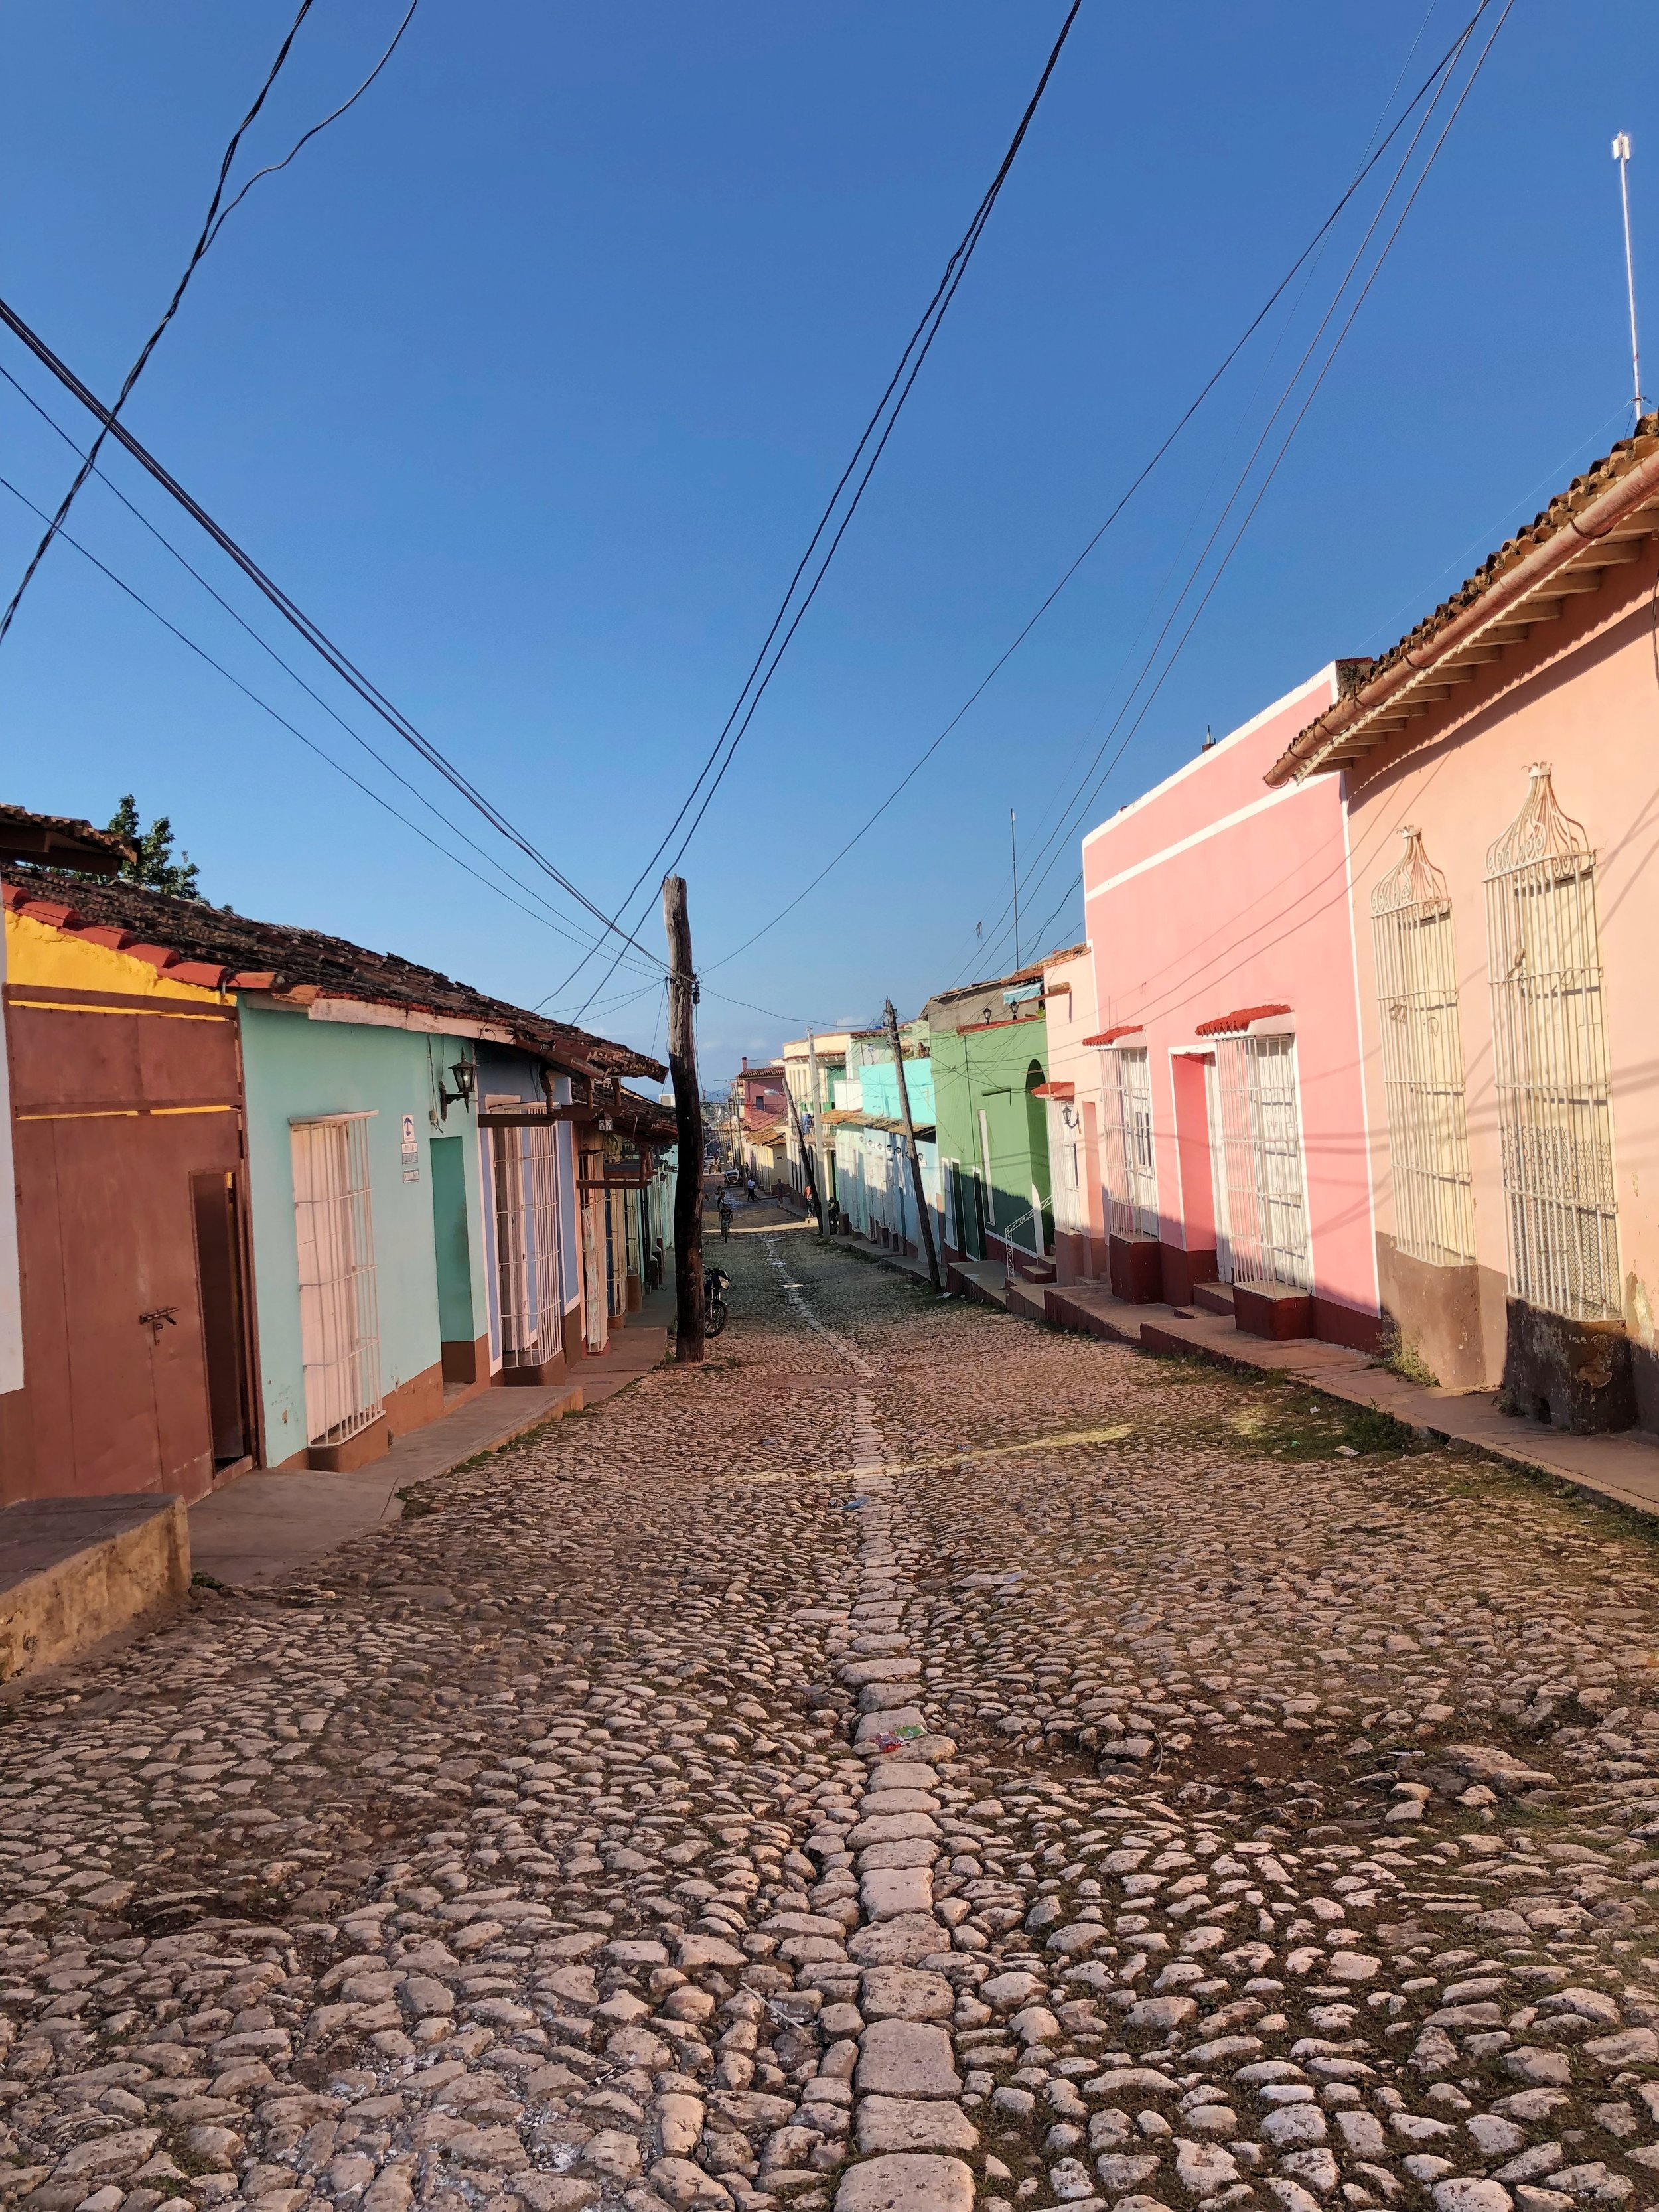 The cobblestone streets of Trinidad